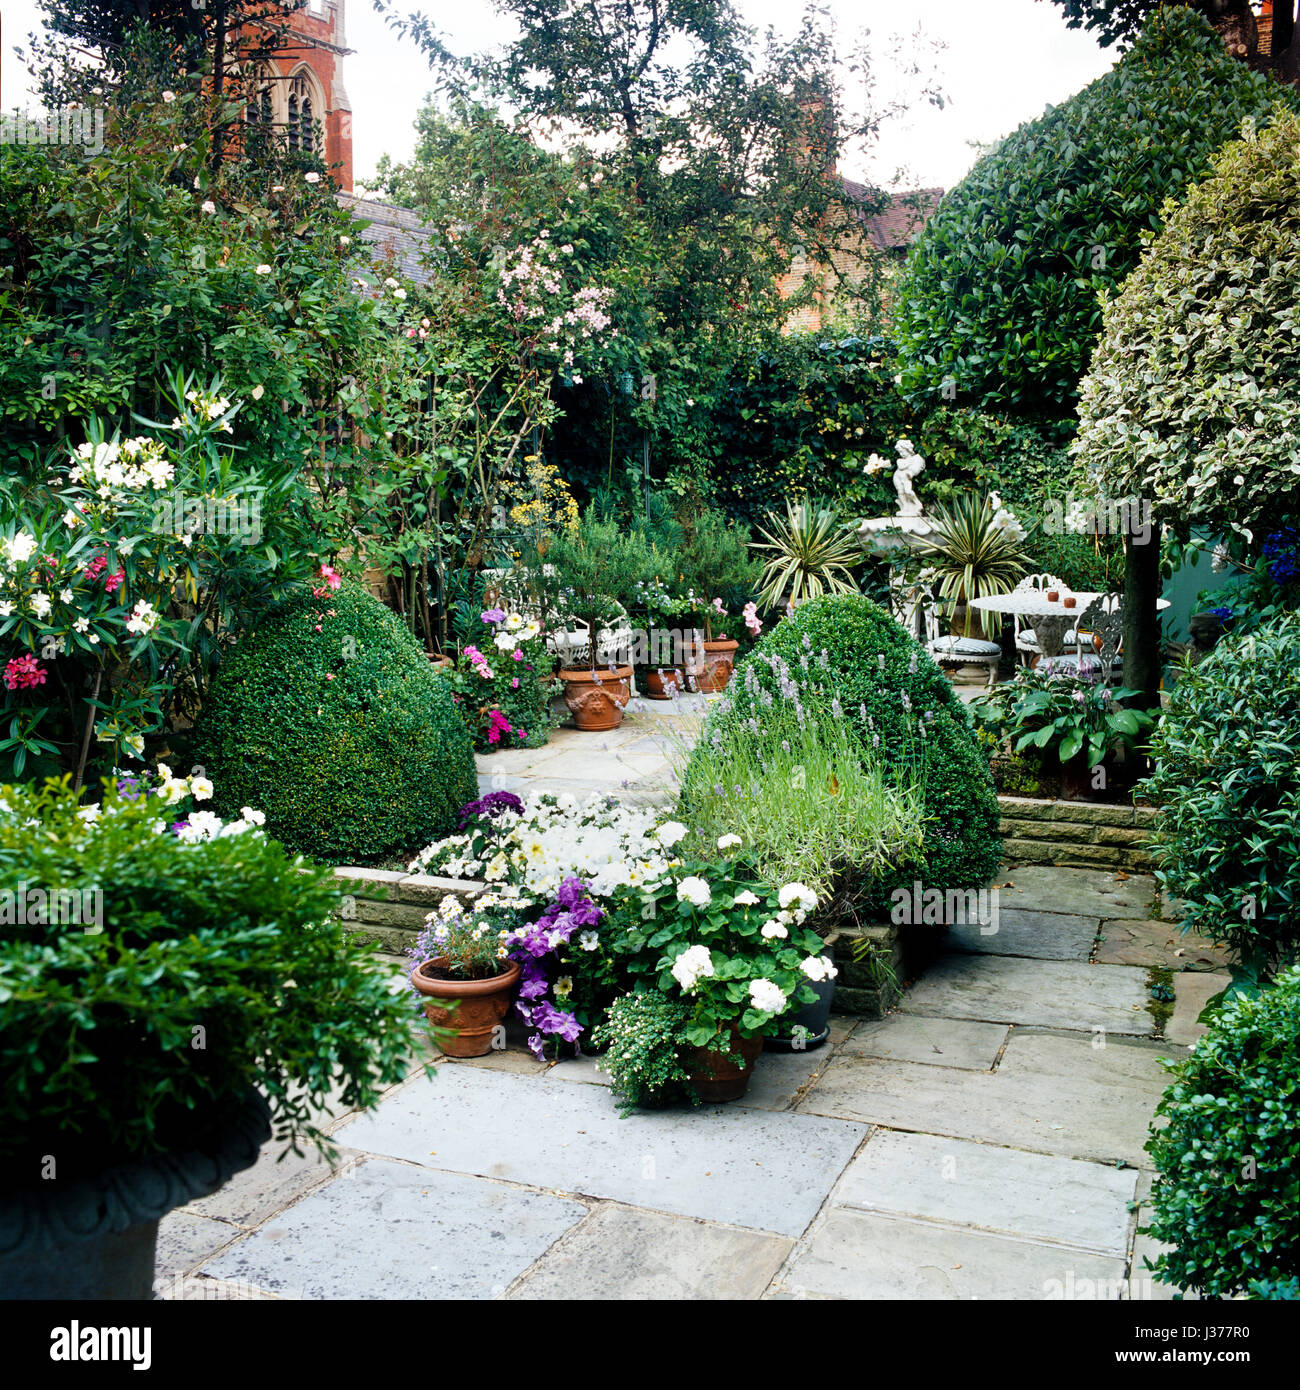 Interior Garden Courtyard High Resolution Stock Photography And Images Alamy